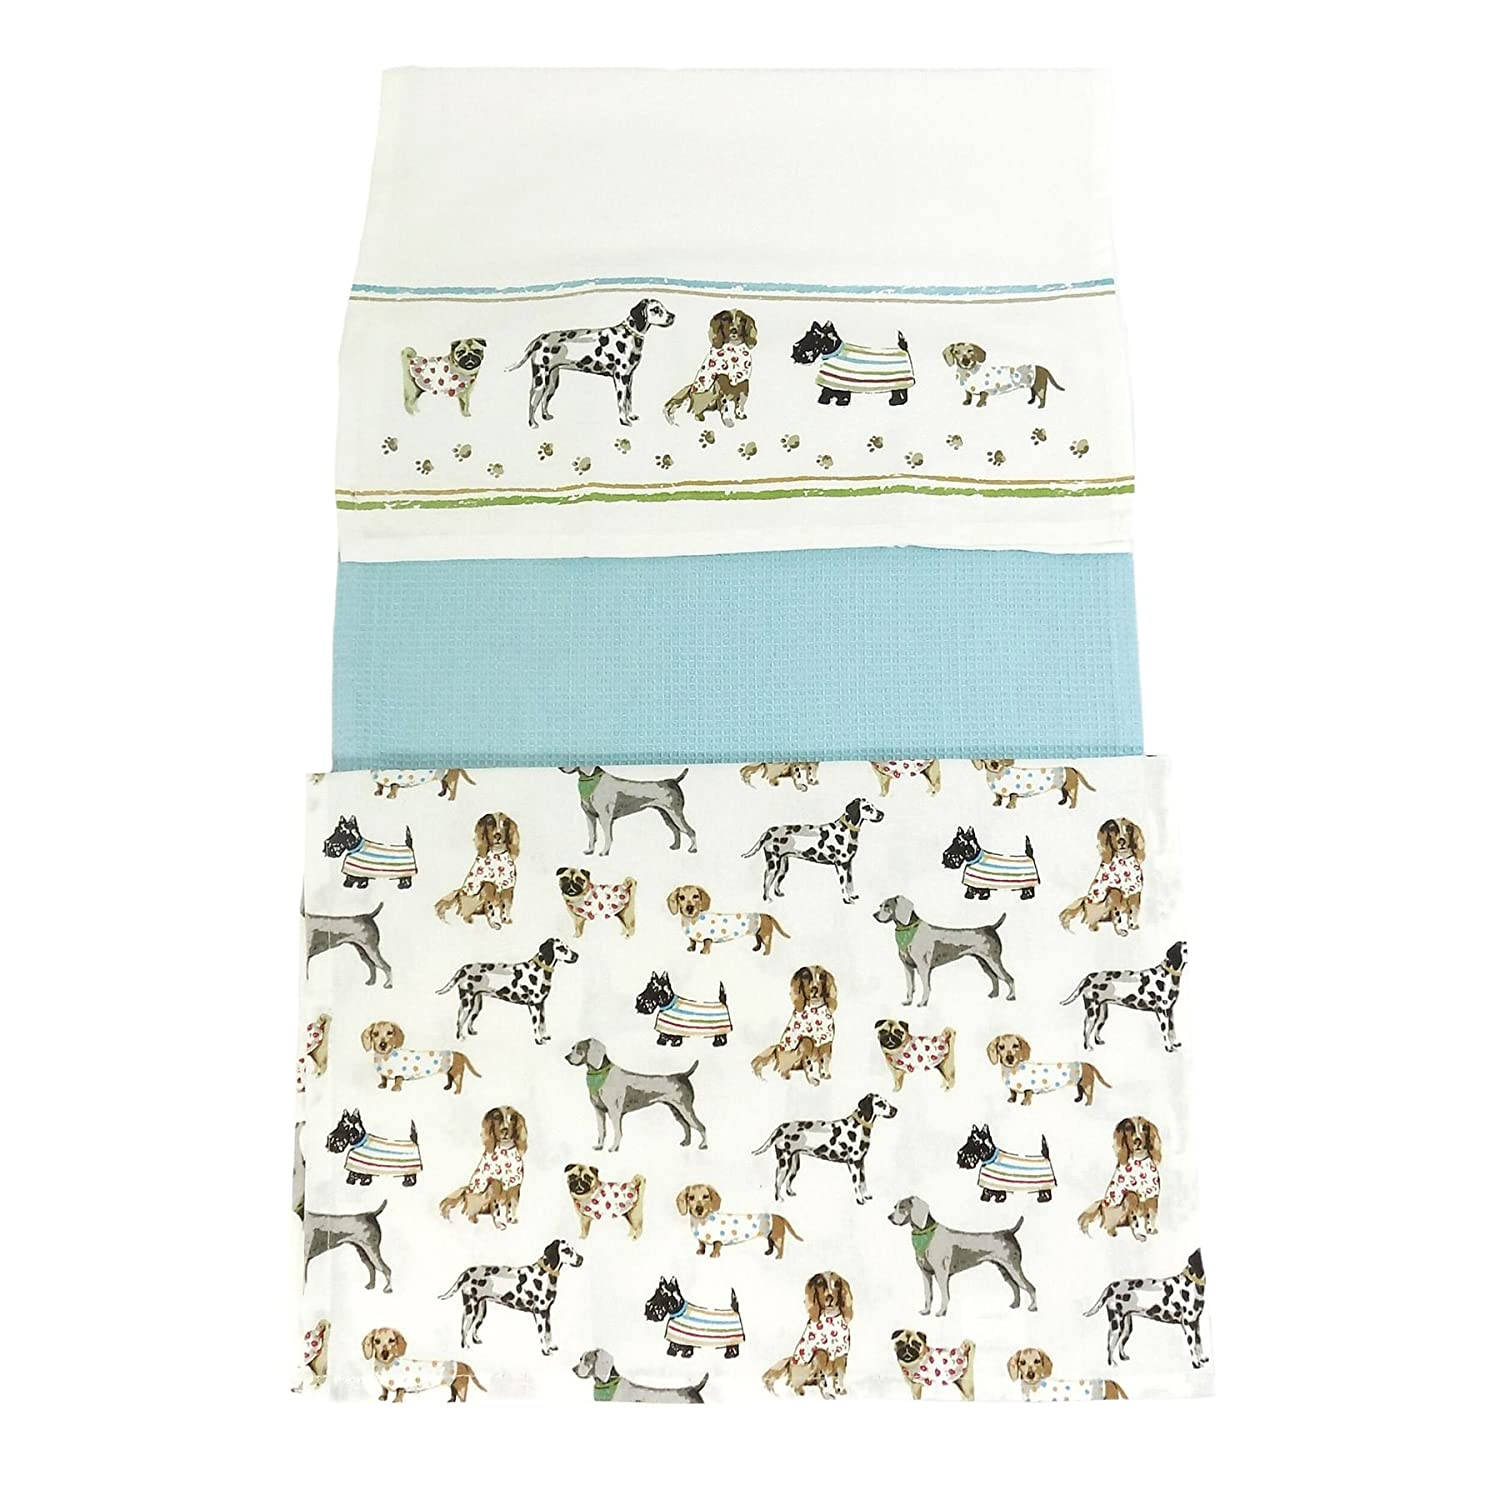 3 X CUTE PUPPY DOG WESTIE PUG DALMATIAN SPANIEL KITCHEN TEA DISH TOWELS 100% COTTON TEA TOWELS UNIQUE